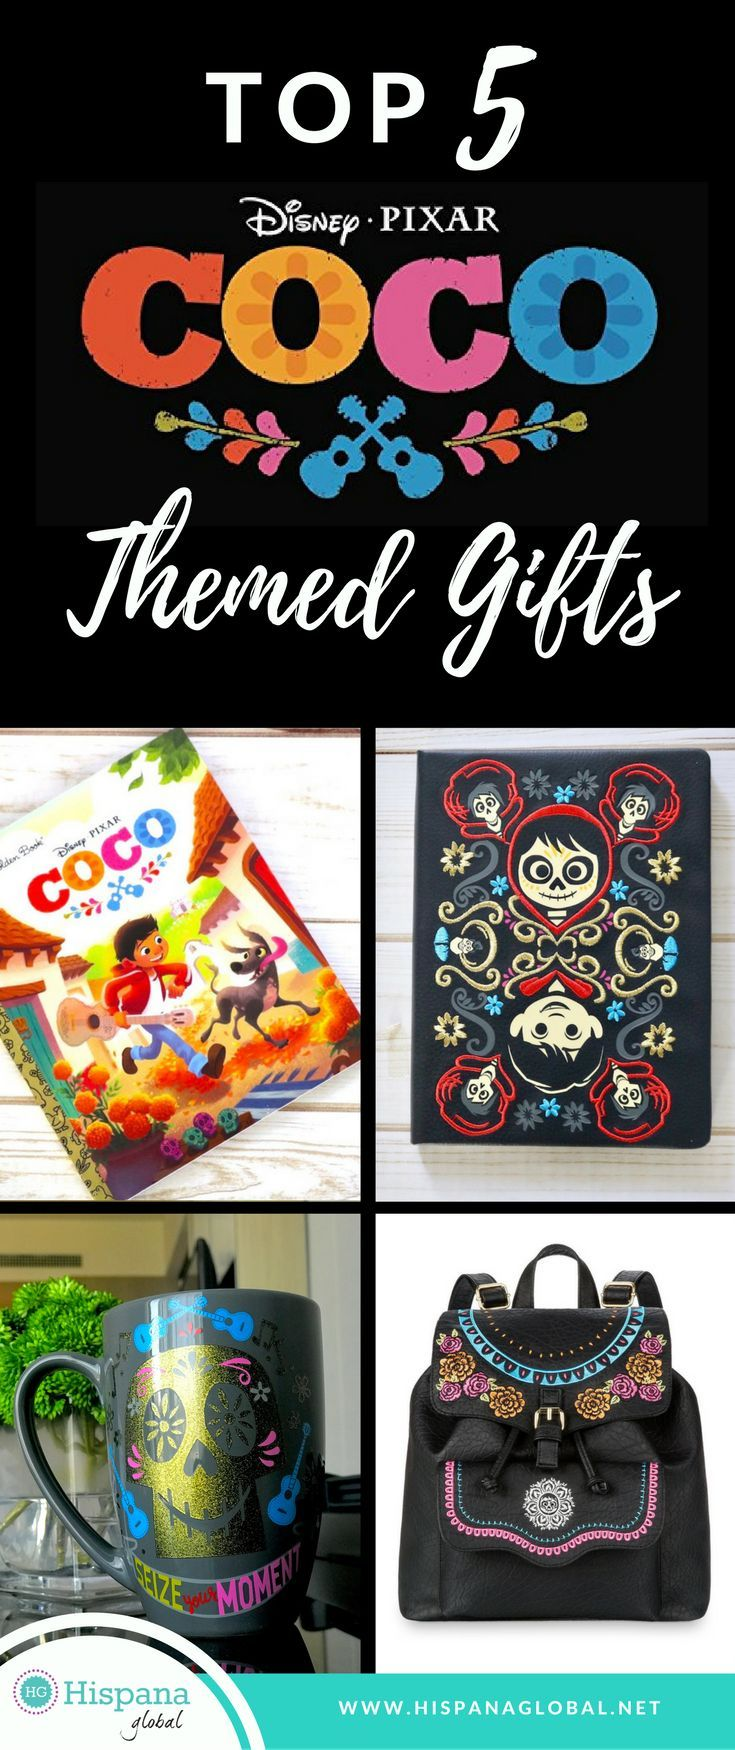 The #2017 #Disney Pixar #film, Coco is warming hearts everywhere and just in time for the holidays! These are my Top 5 Coco themed products that make great #gifts or even, cute decor or handouts for a Coco themed #party!! With so many lovable #character, you will probably want to bring a piece of this magical film home with you!